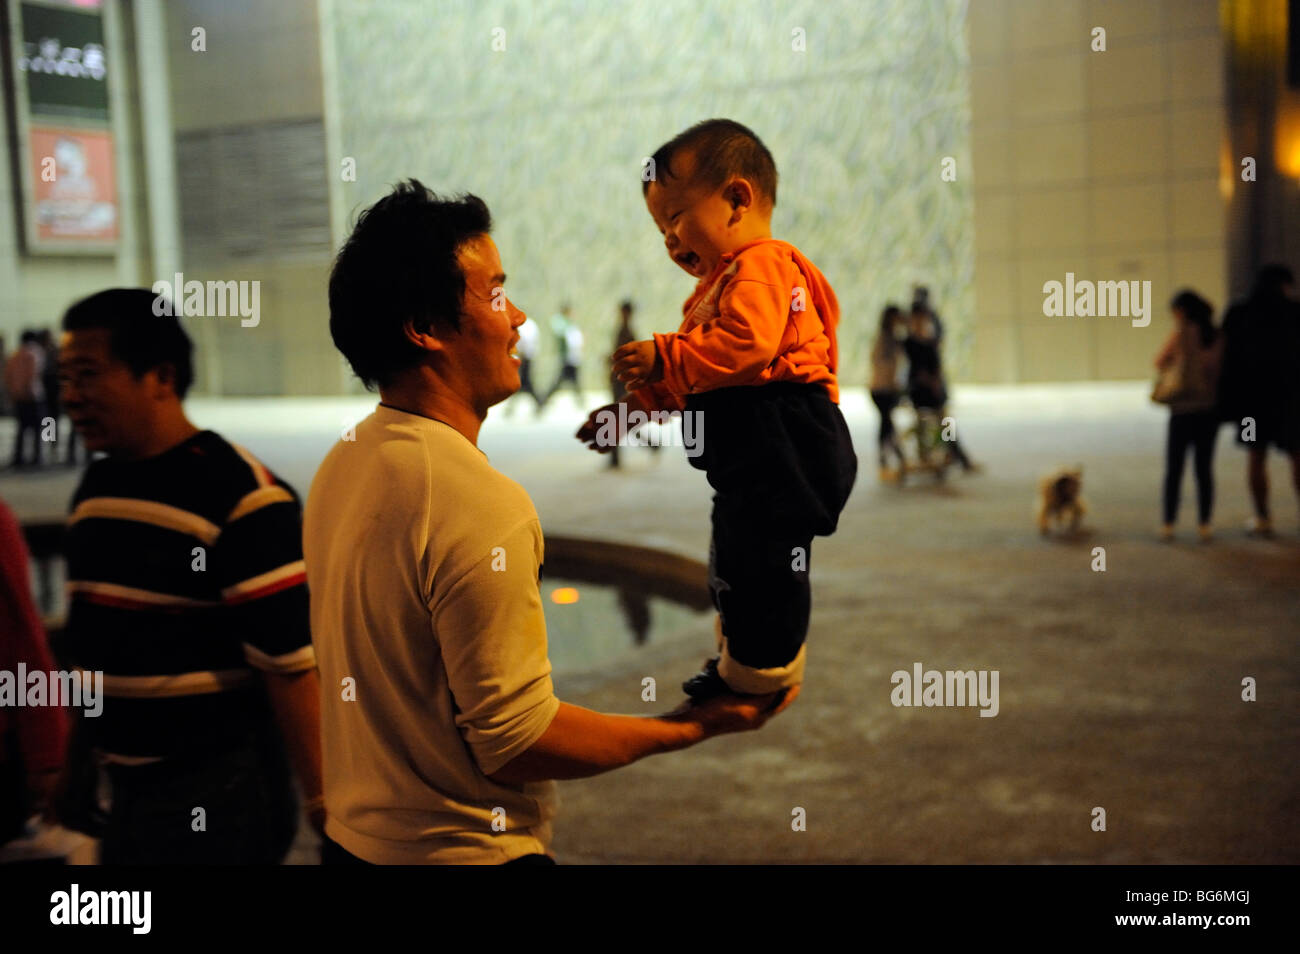 Father with his son in Shanghai, China. - Stock Image